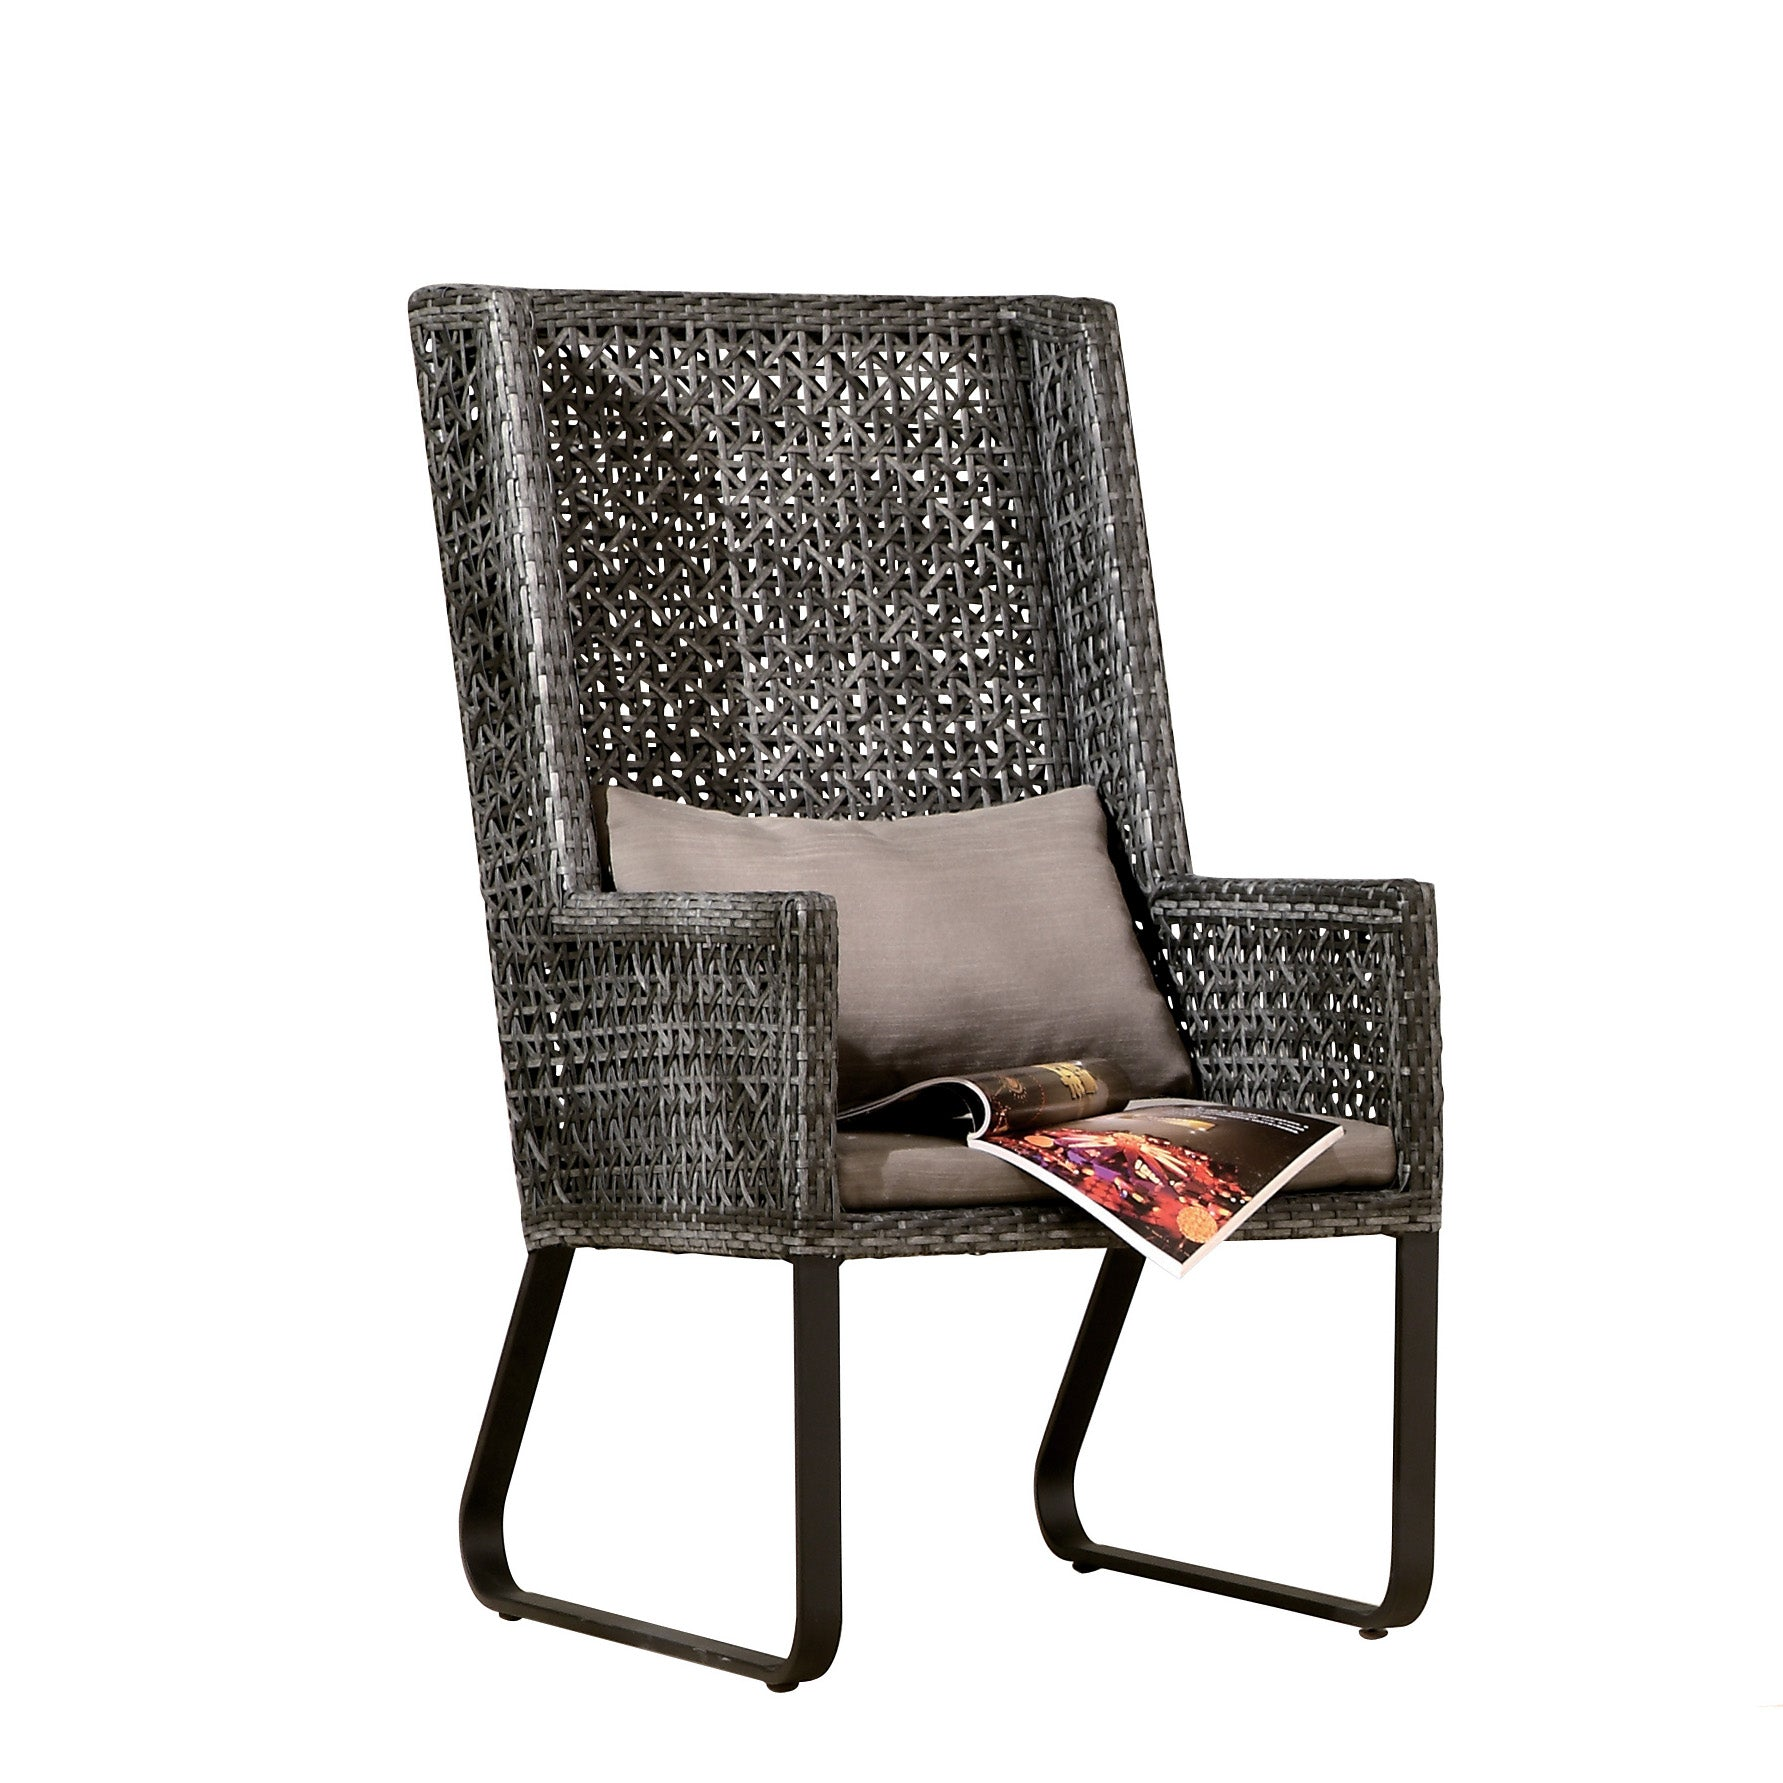 Contract Quality High Back Outdoor Lounge Chair Tb Outdoor Design